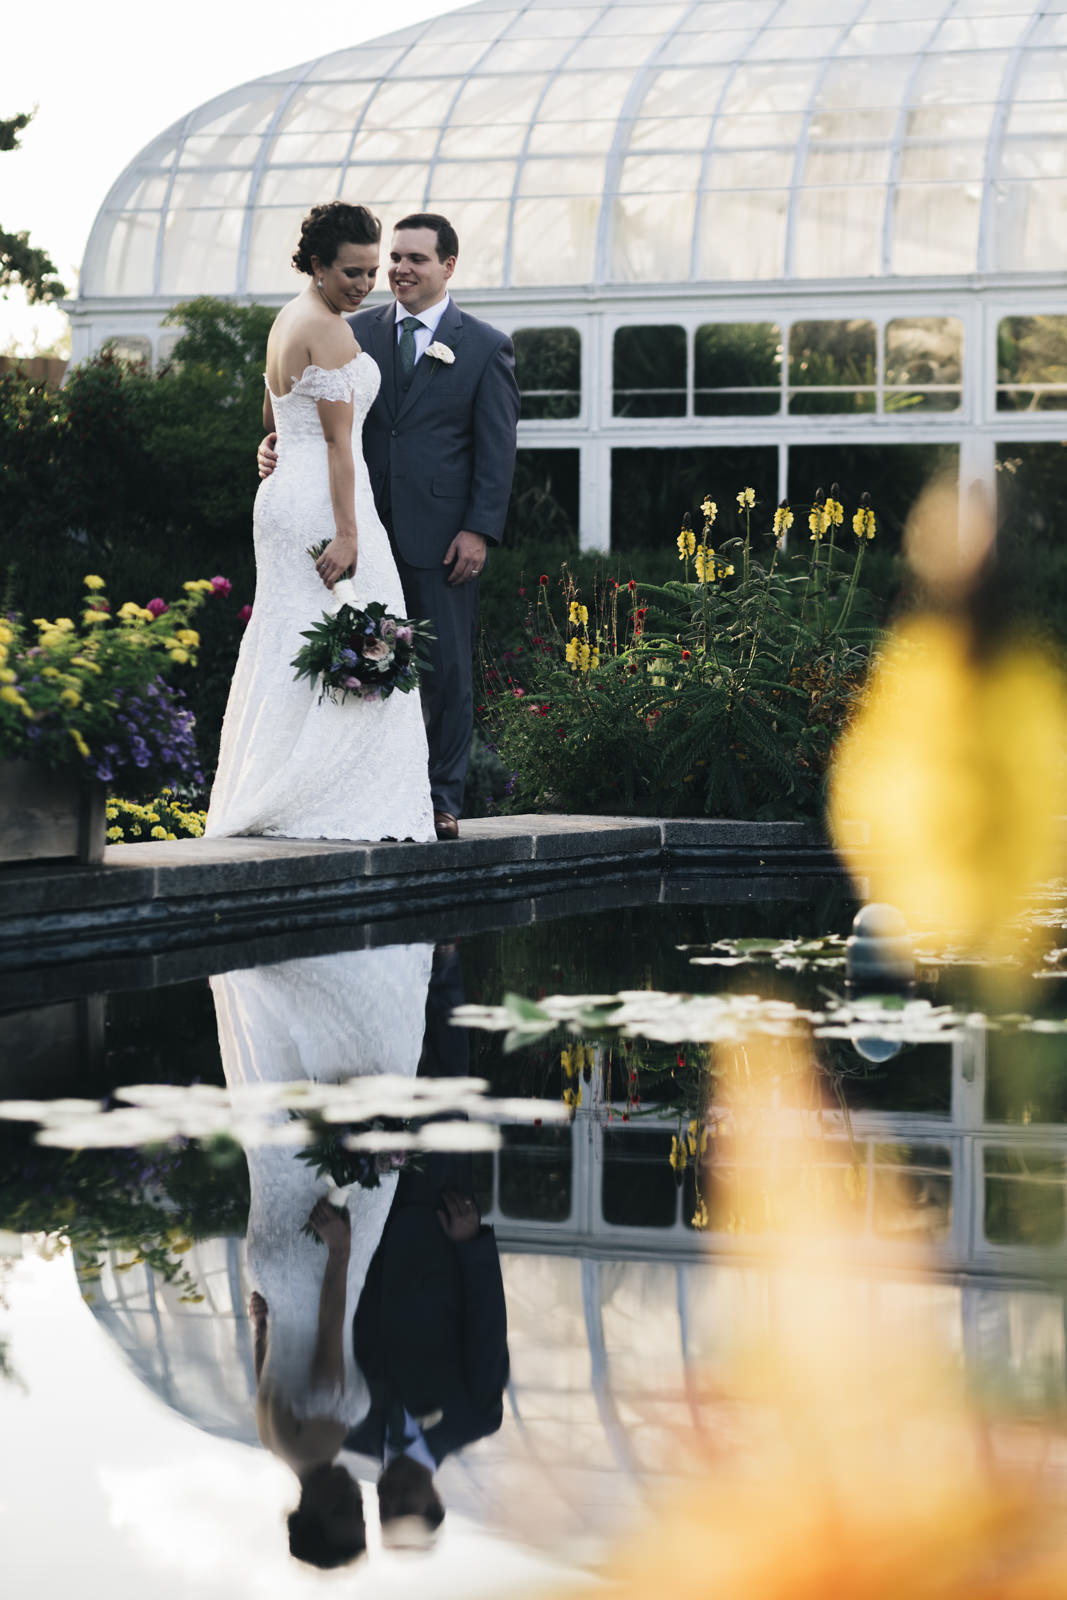 Bride and groom stand on the edge of a pond with their reflection in the water at sunset for their creative session.